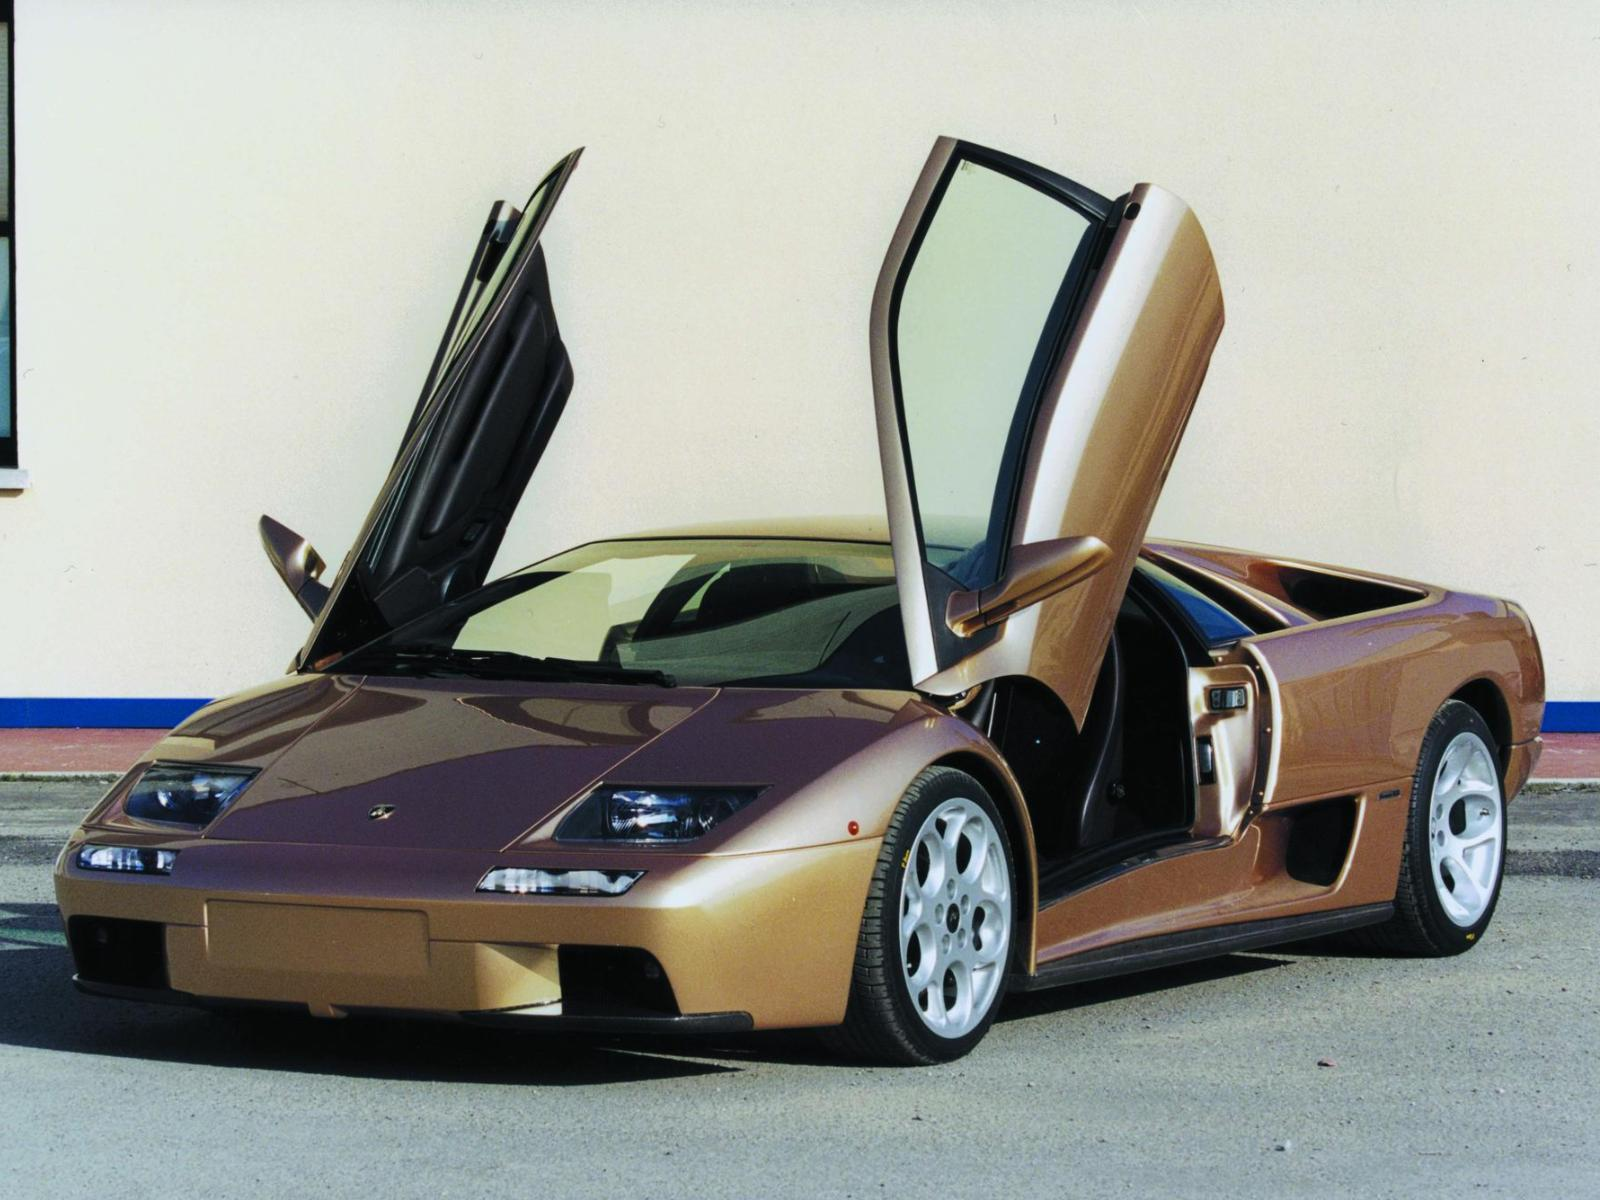 Exceptional Lamborghini Cars Wallpapers | Facebook Timeline Cover Photos .